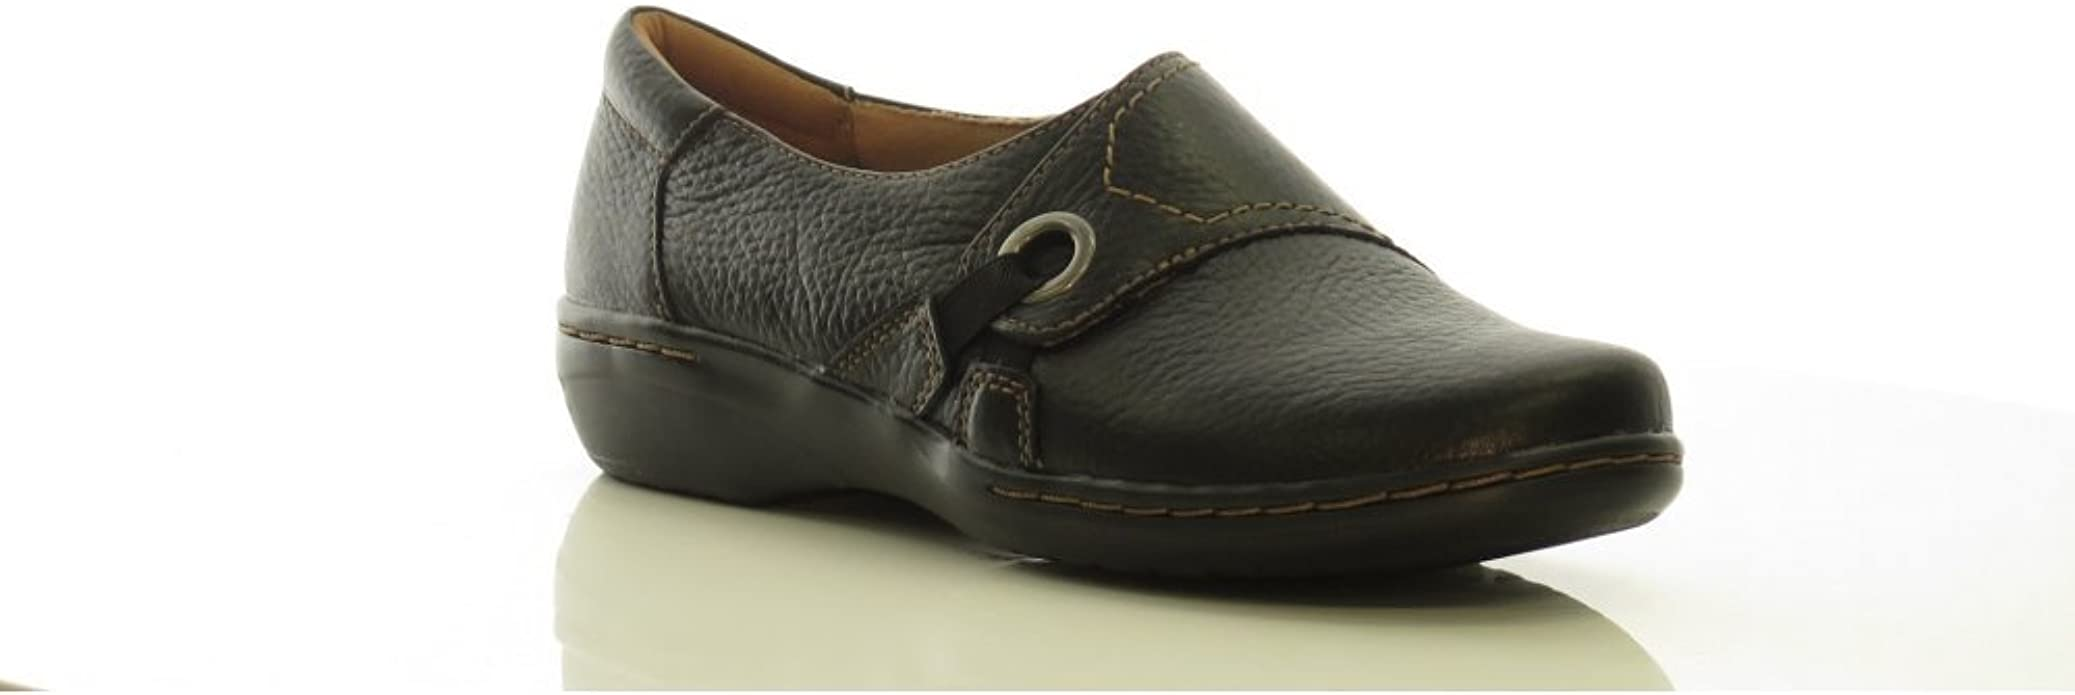 Ladies Clarks Evianna Boa Leather Casual Trouser Shoes D Fitting